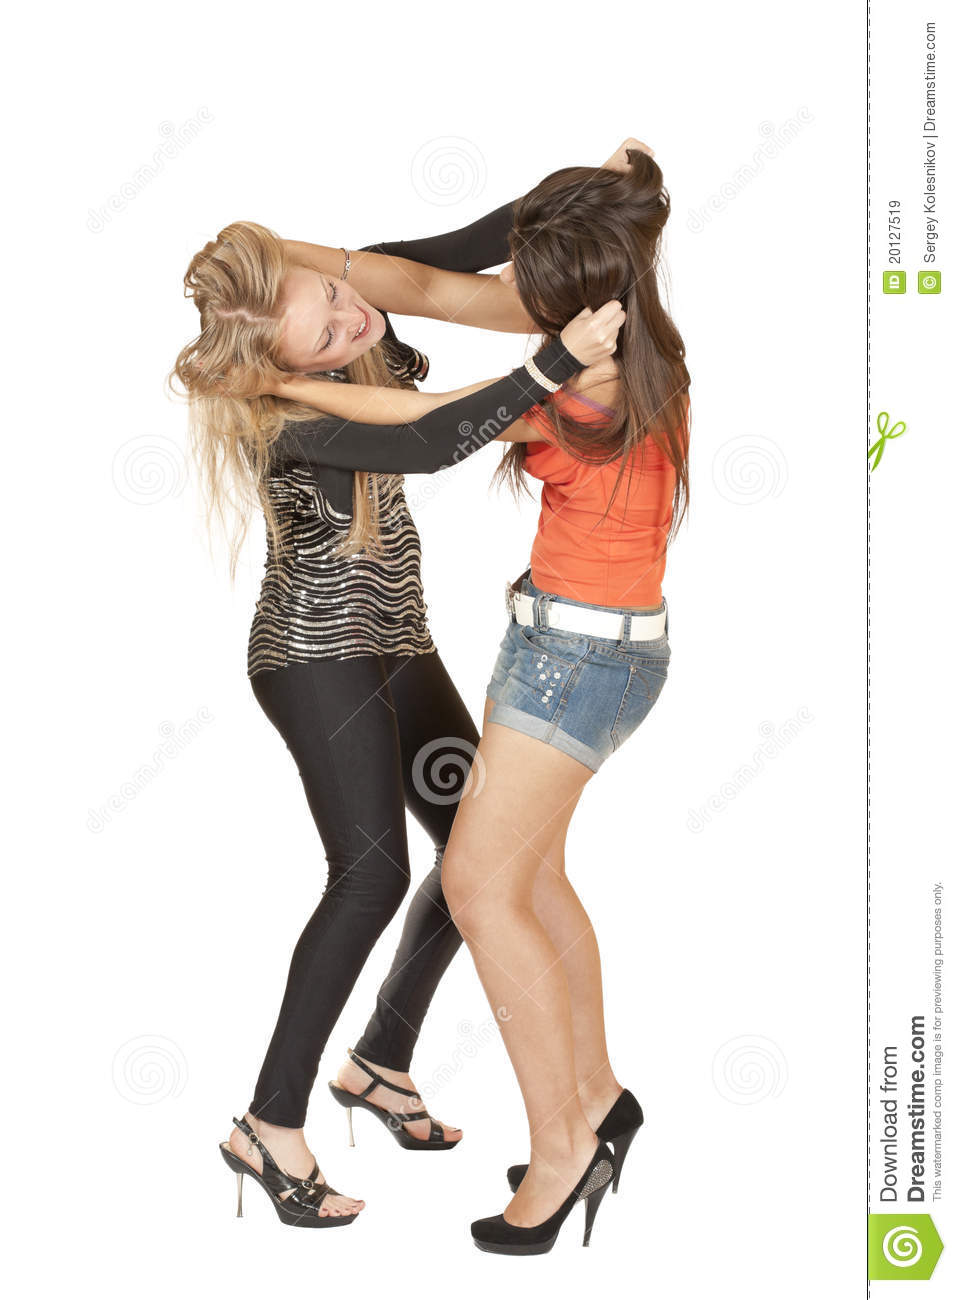 Two girl fighting fantastic